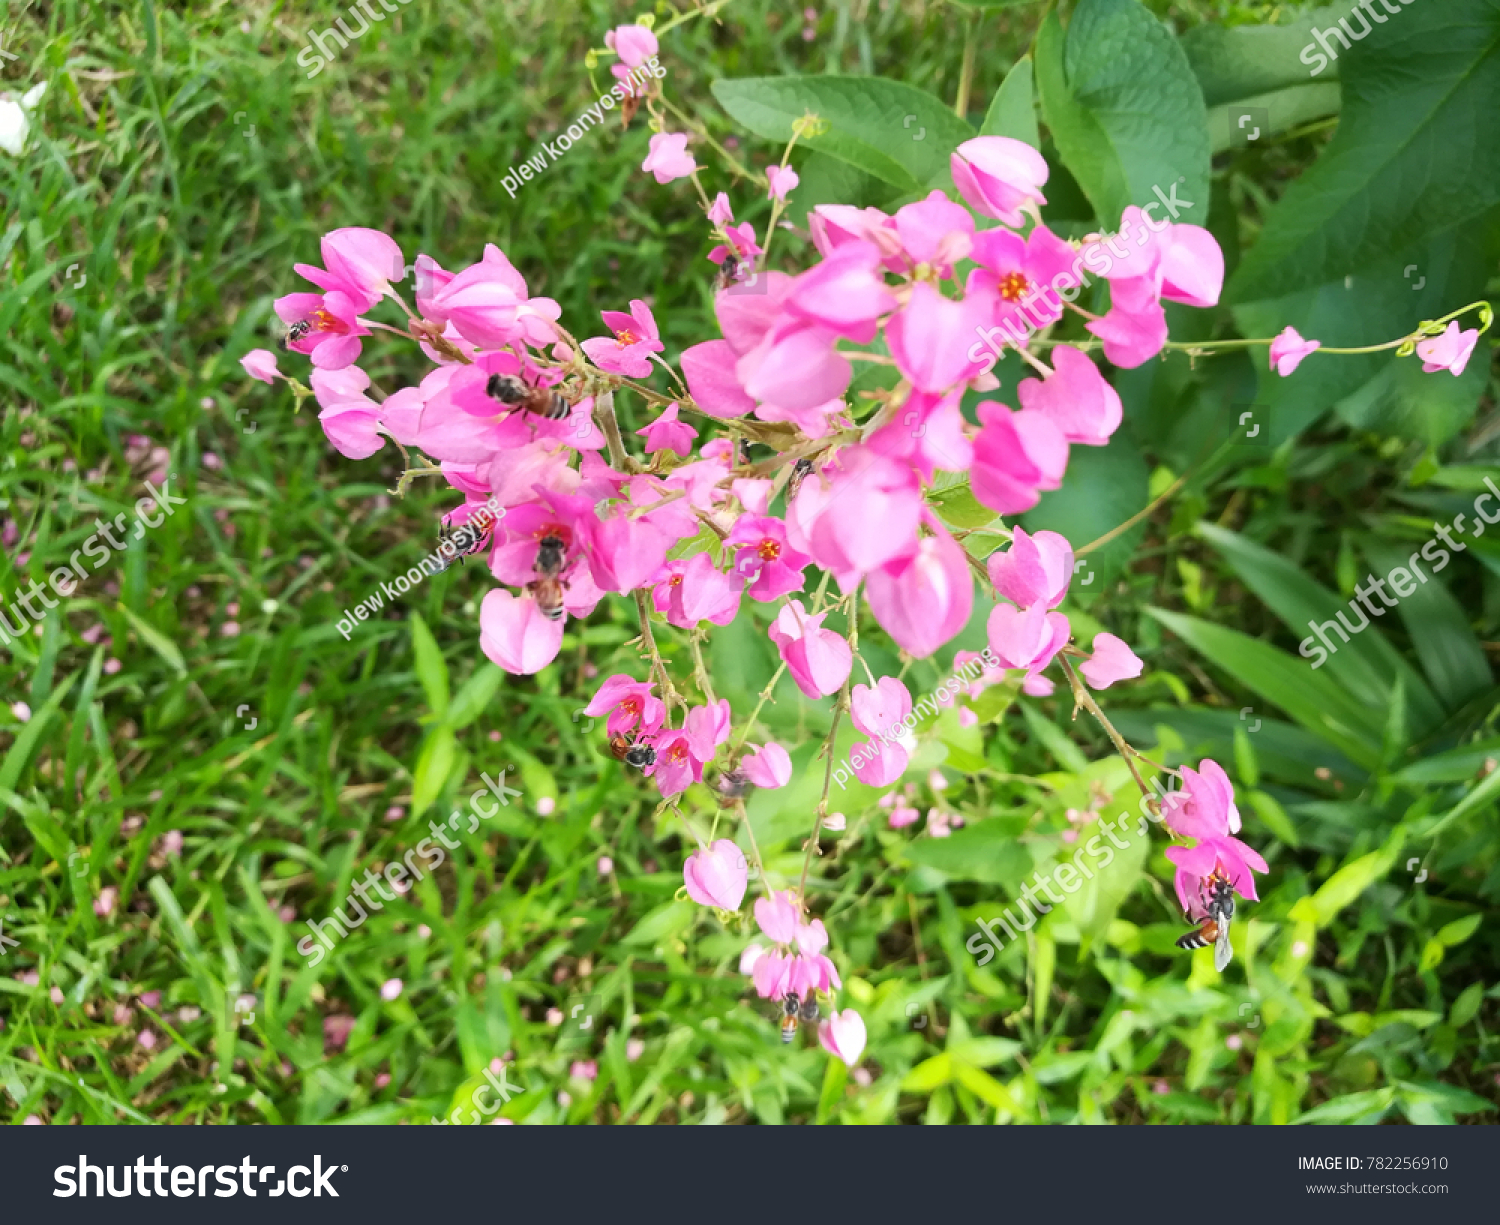 Pink Coral Vine Flowers Bees Flying Stock Photo Edit Now 782256910